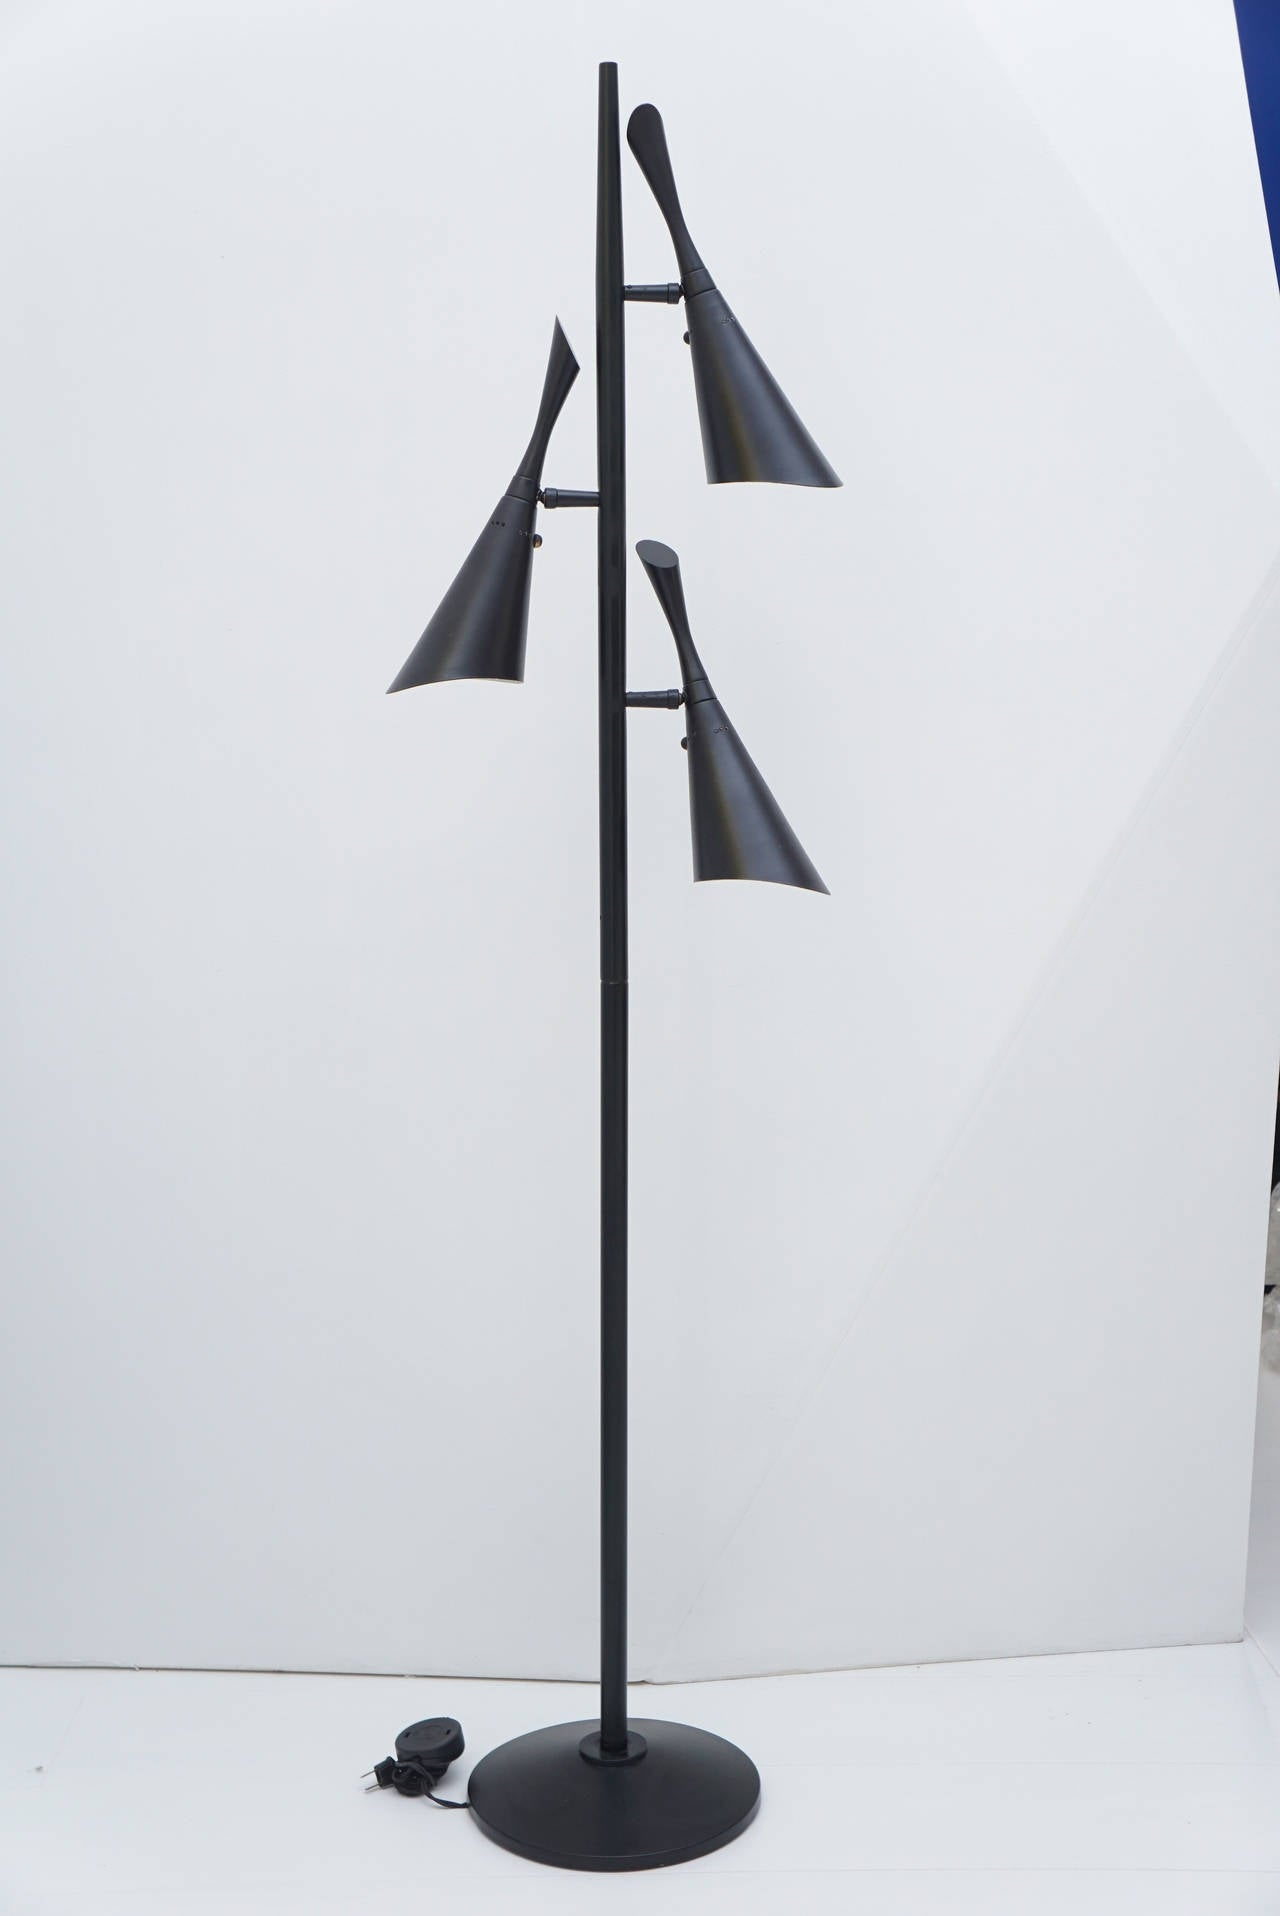 1950s modern adjustable floor lamp for sale at 1stdibs for 1950s floor lamps